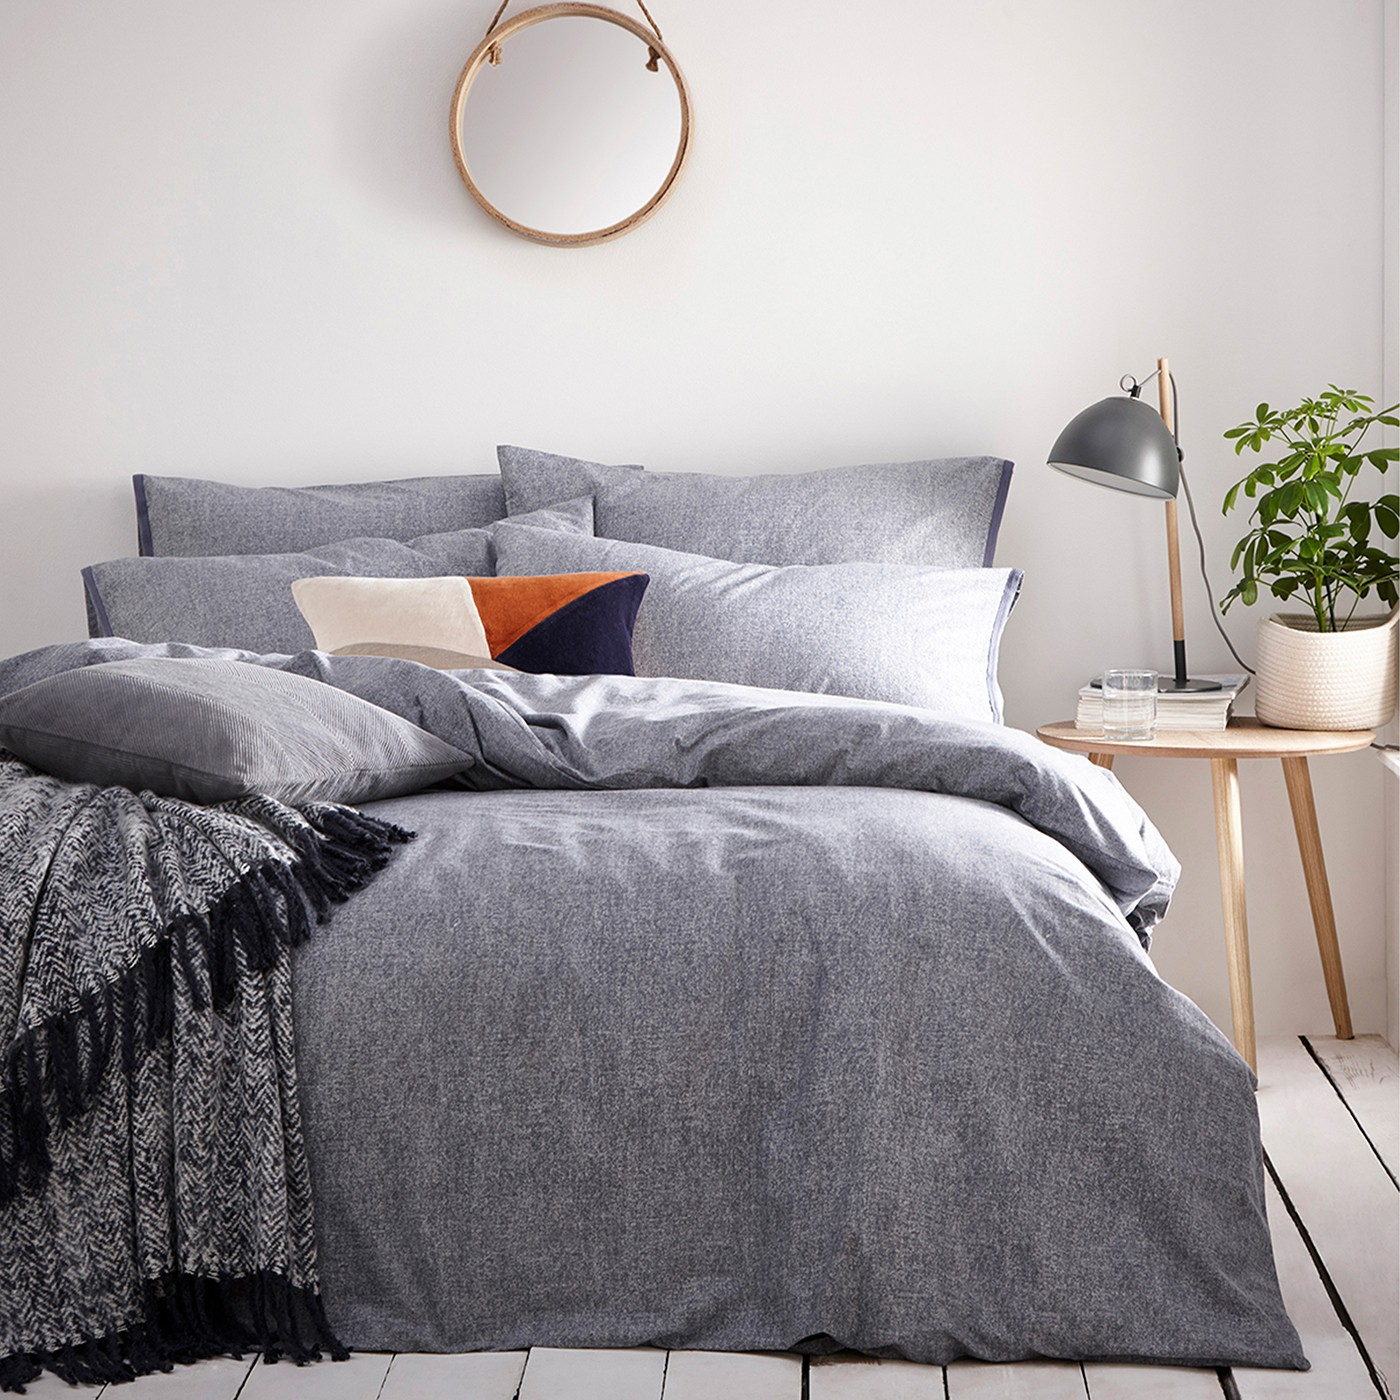 The Home Furnishings Company Claybourne Denim Duvet Cover and Matching Pillow Cases